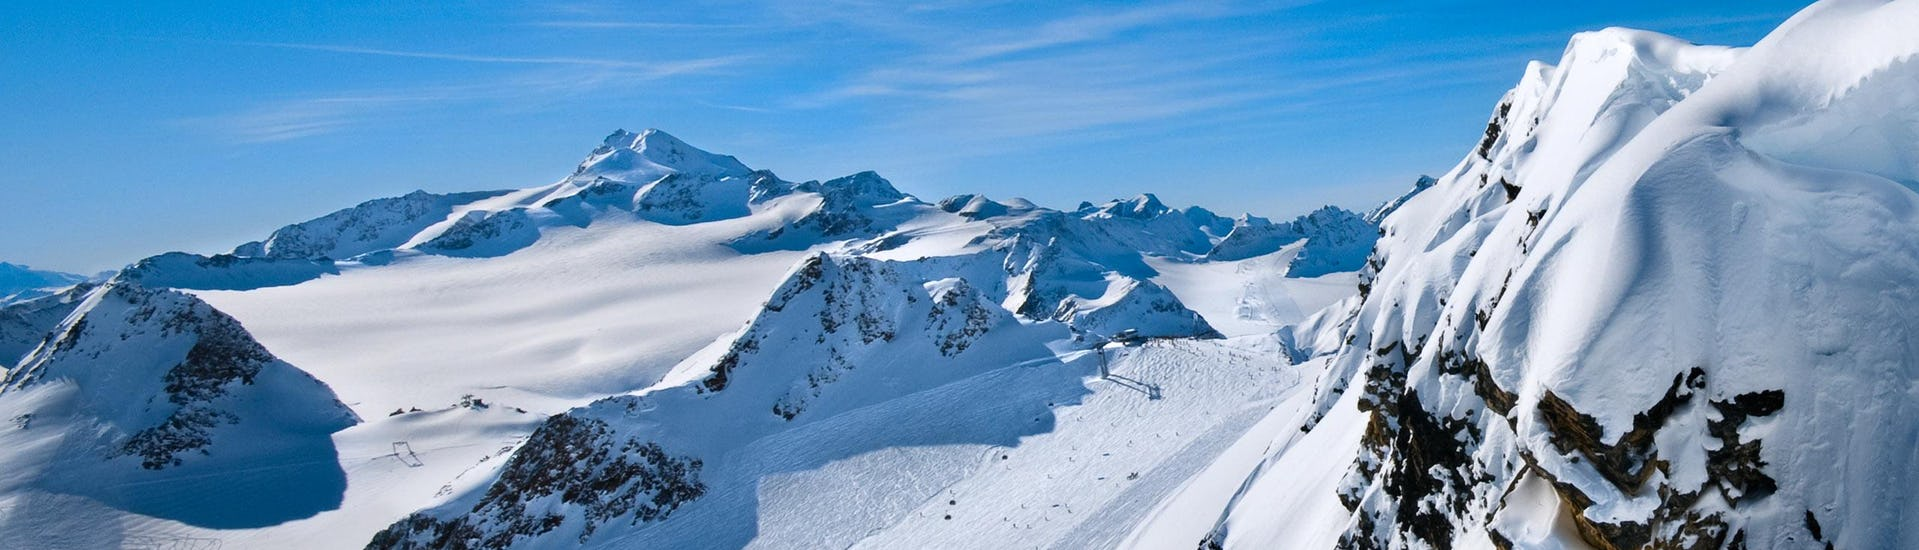 A view of a snowy mountain top in the ski resort of Bormio, where ski schools gather to start their ski lessons.